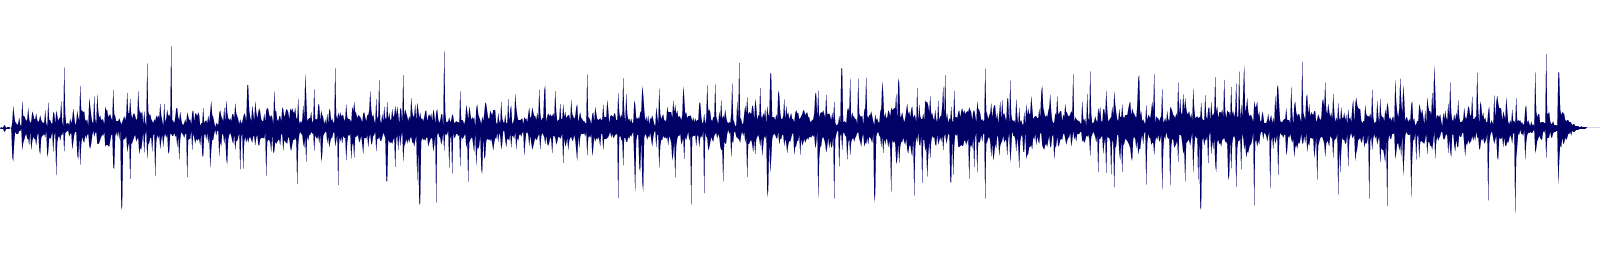 waveform of track #132438